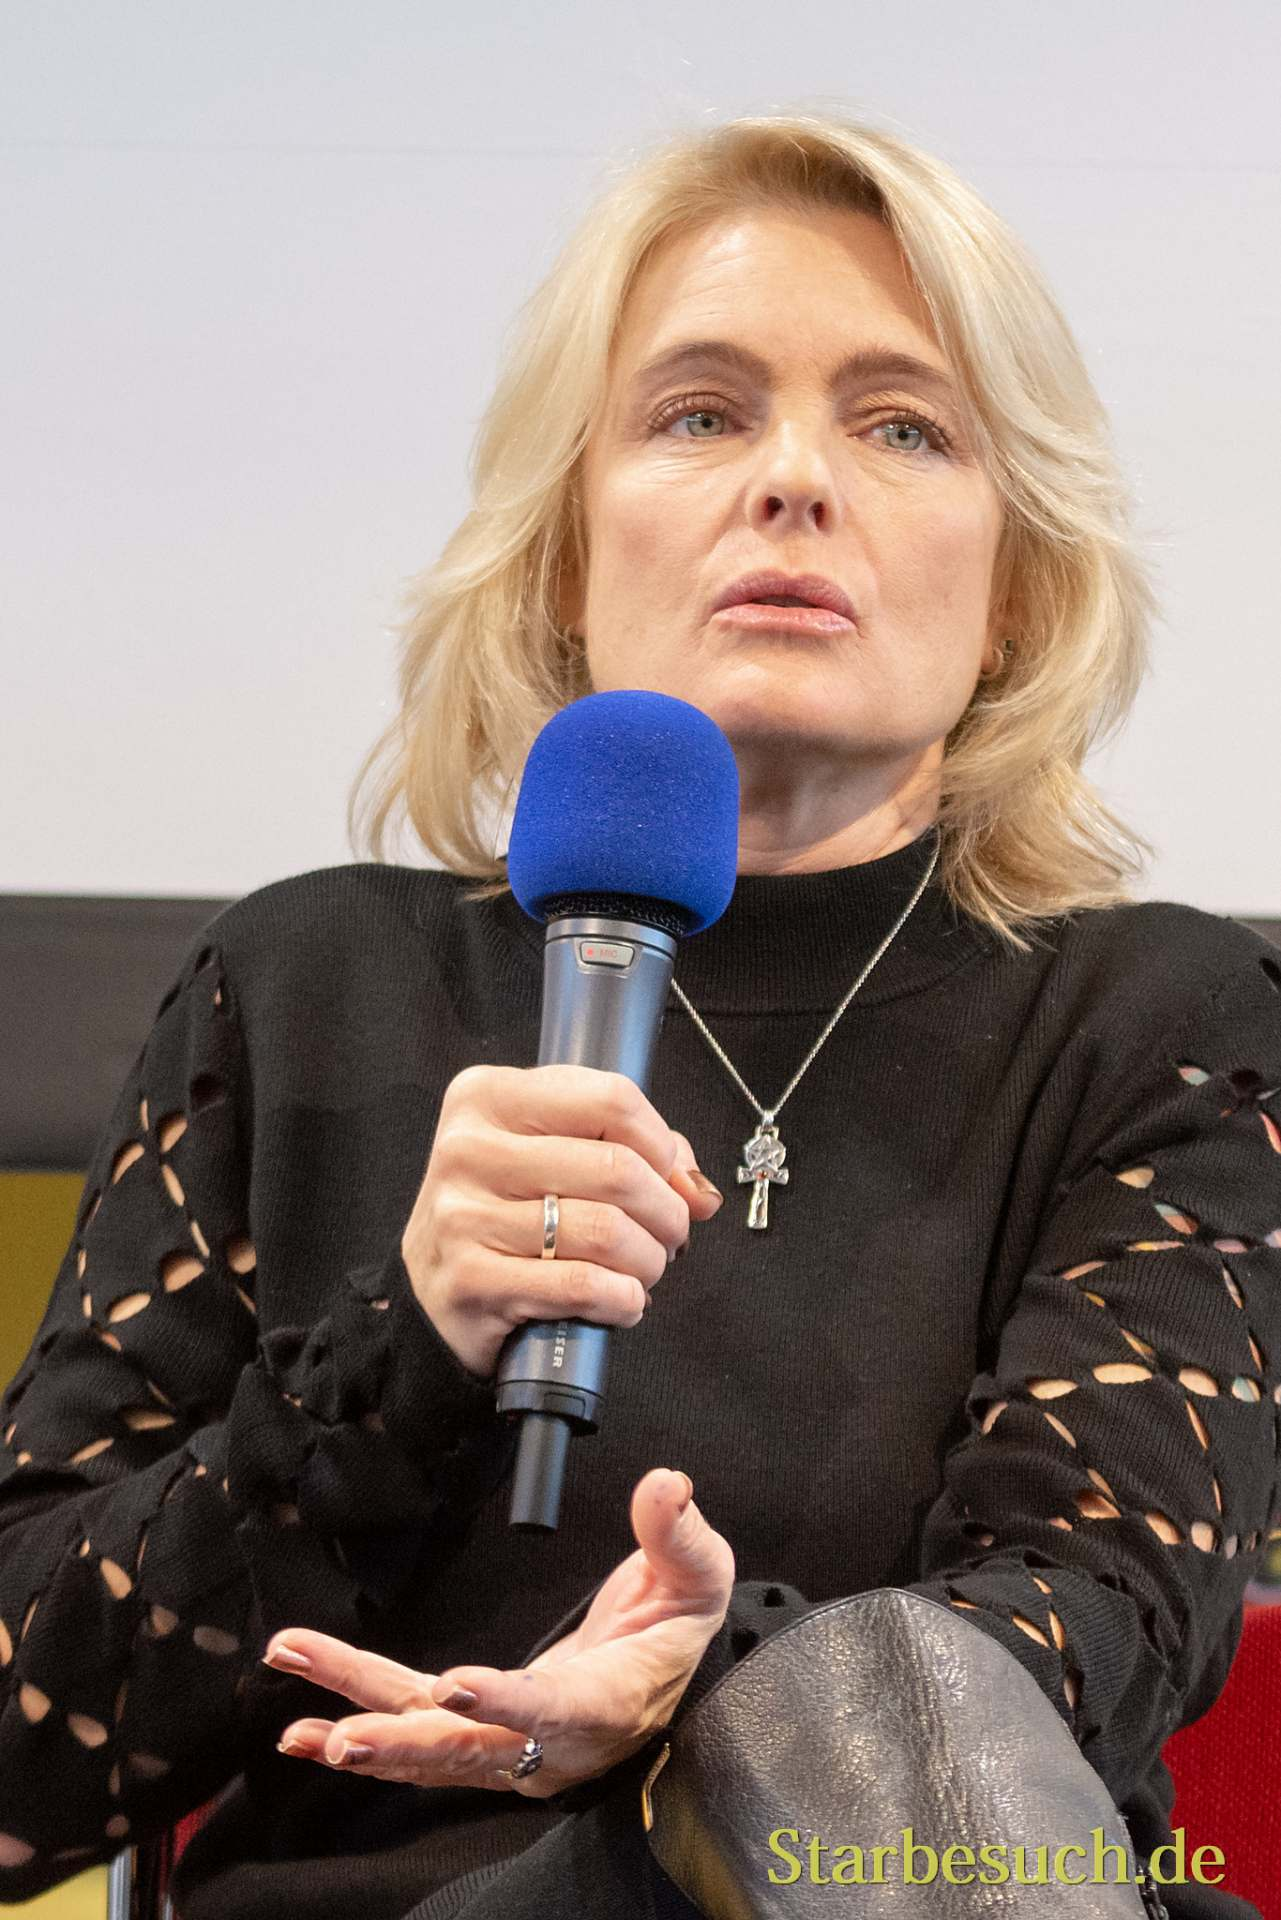 DORTMUND, GERMANY - December 1st 2018: Erika Eleniak (*1969, American actress of Ukrainian descent - Baywatch) at German Comic Con Dortmund, a two day fan convention